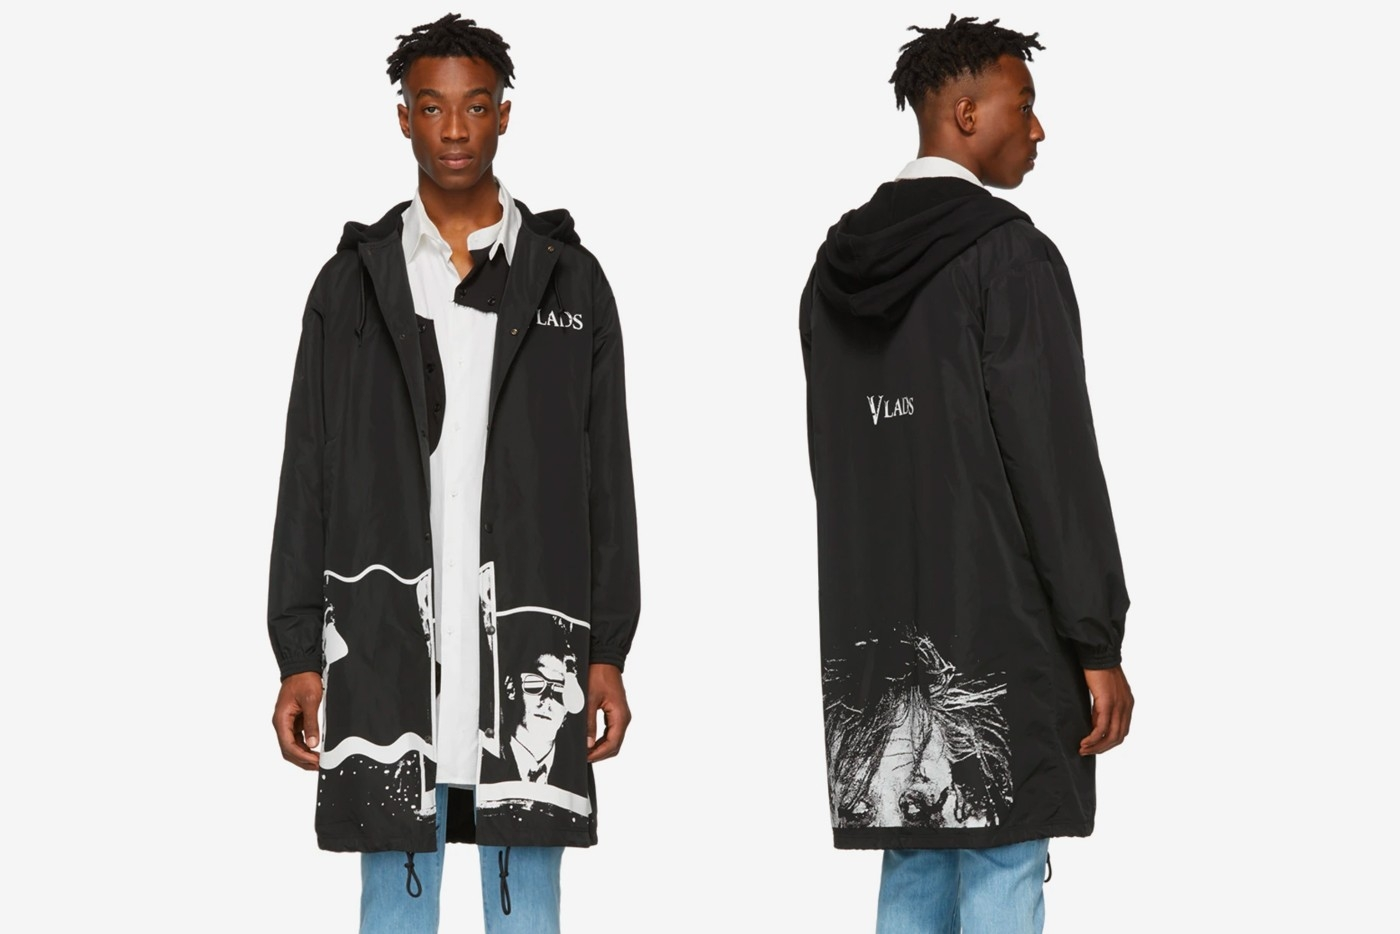 https___hypebeast.com_image_2019_03_undercover-ss19-dead-hermits-vlads-release-004.jpg